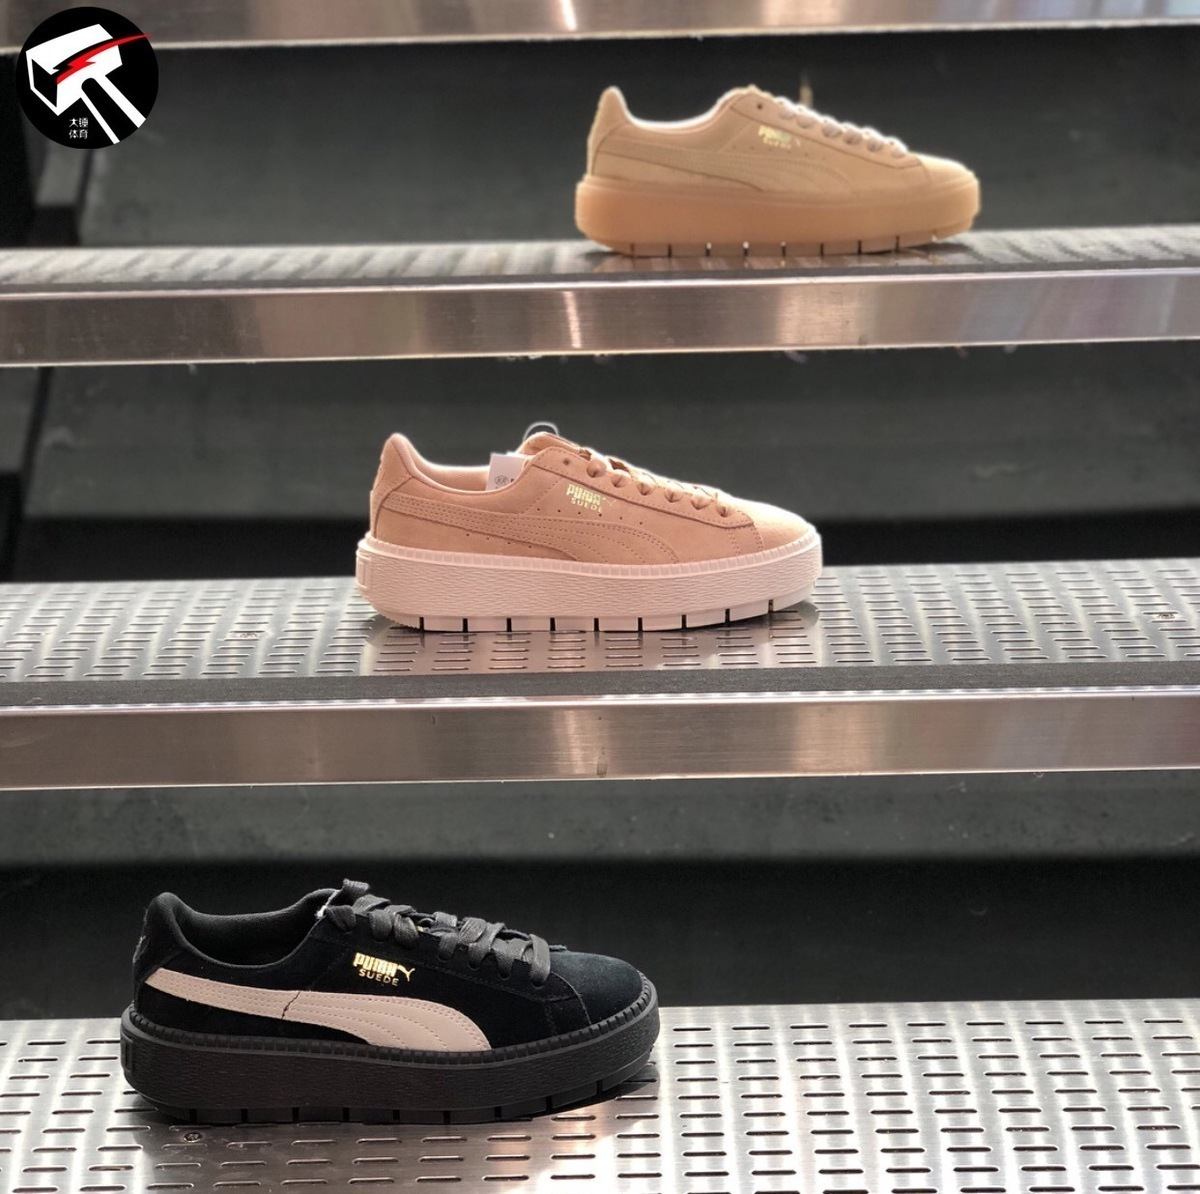 1f2ecc0be30 Original Puma Rihanna Muffin Shoes Black Increased Internal Classics  Skateboard Shoes Women Sneakers Lace-up